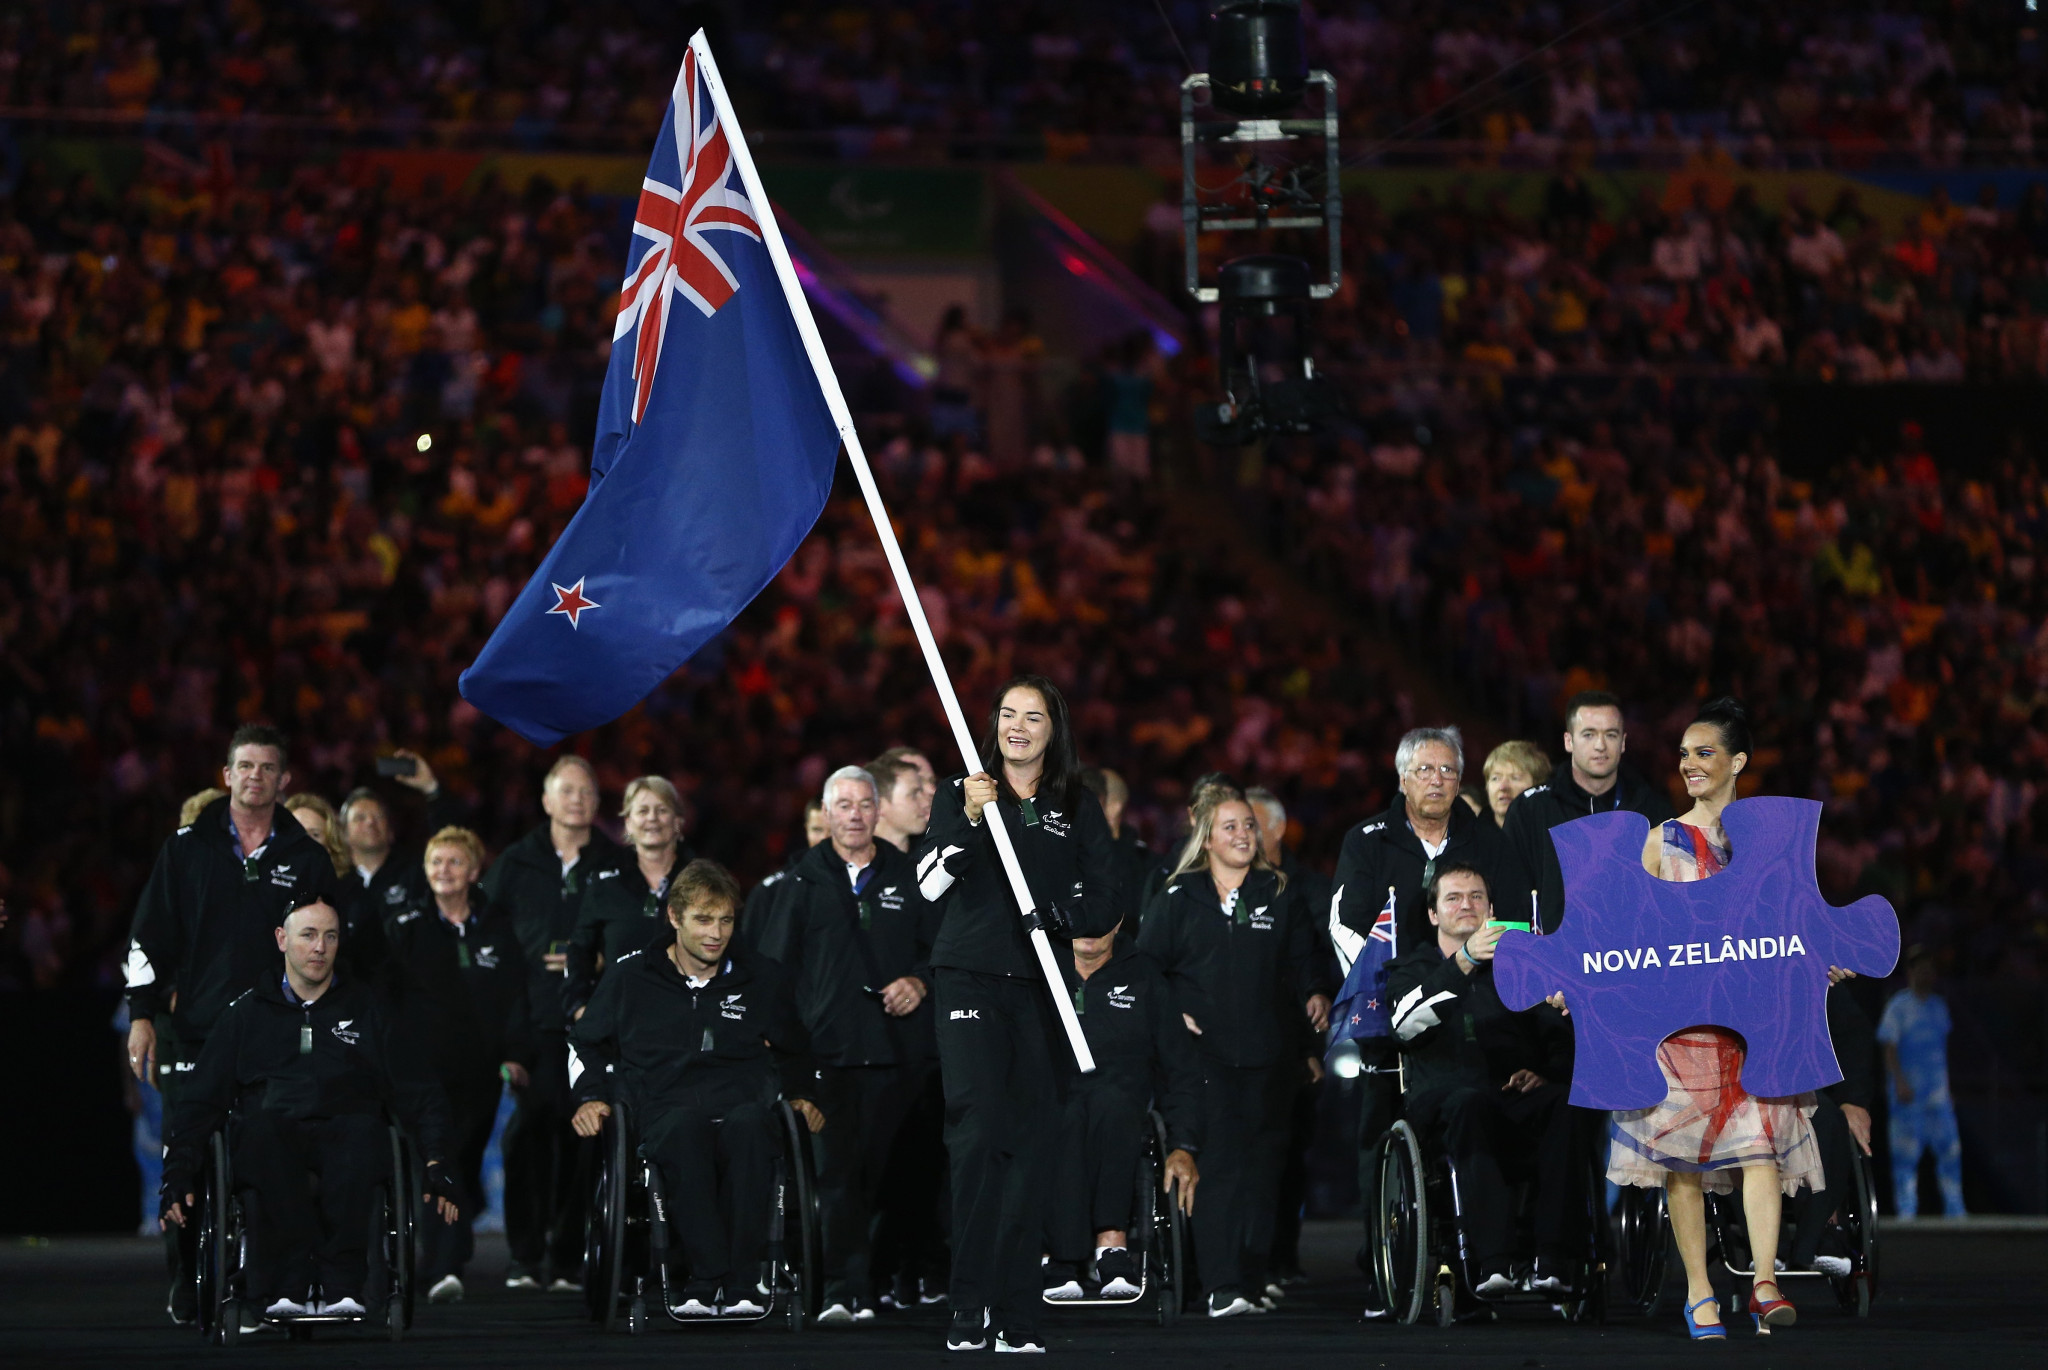 New Zealand have won 221 medals across 23 Paralympic Games ©Getty Images